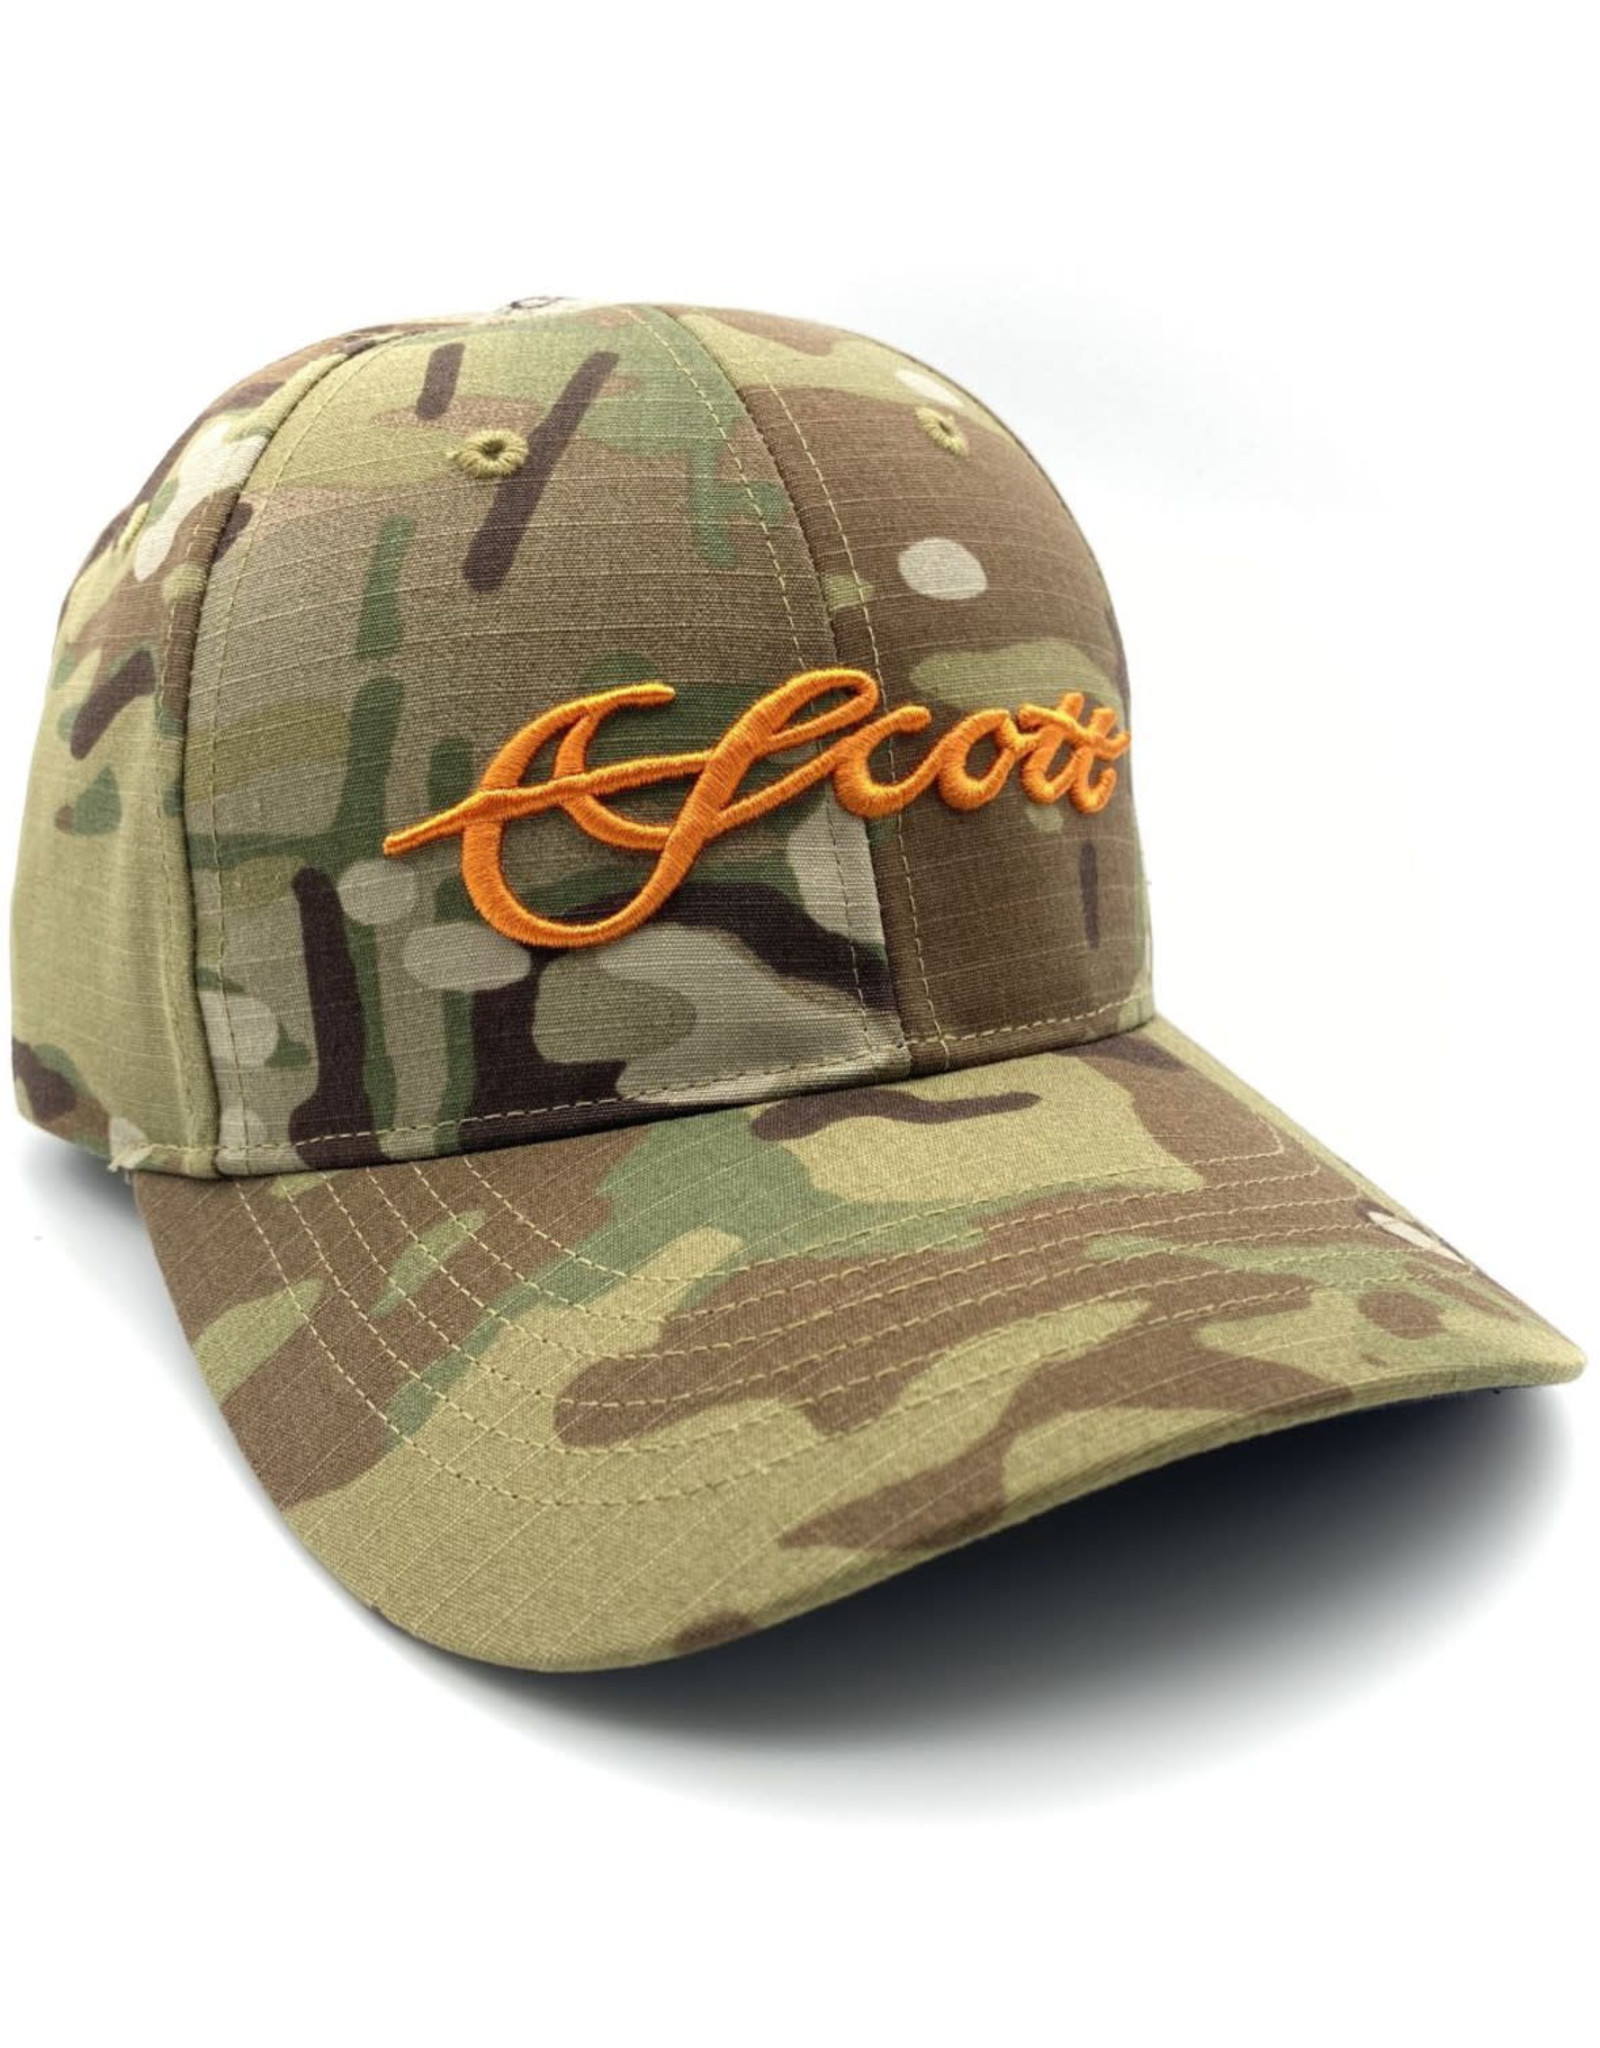 Scott Fly Rods Tactical Camo Hat